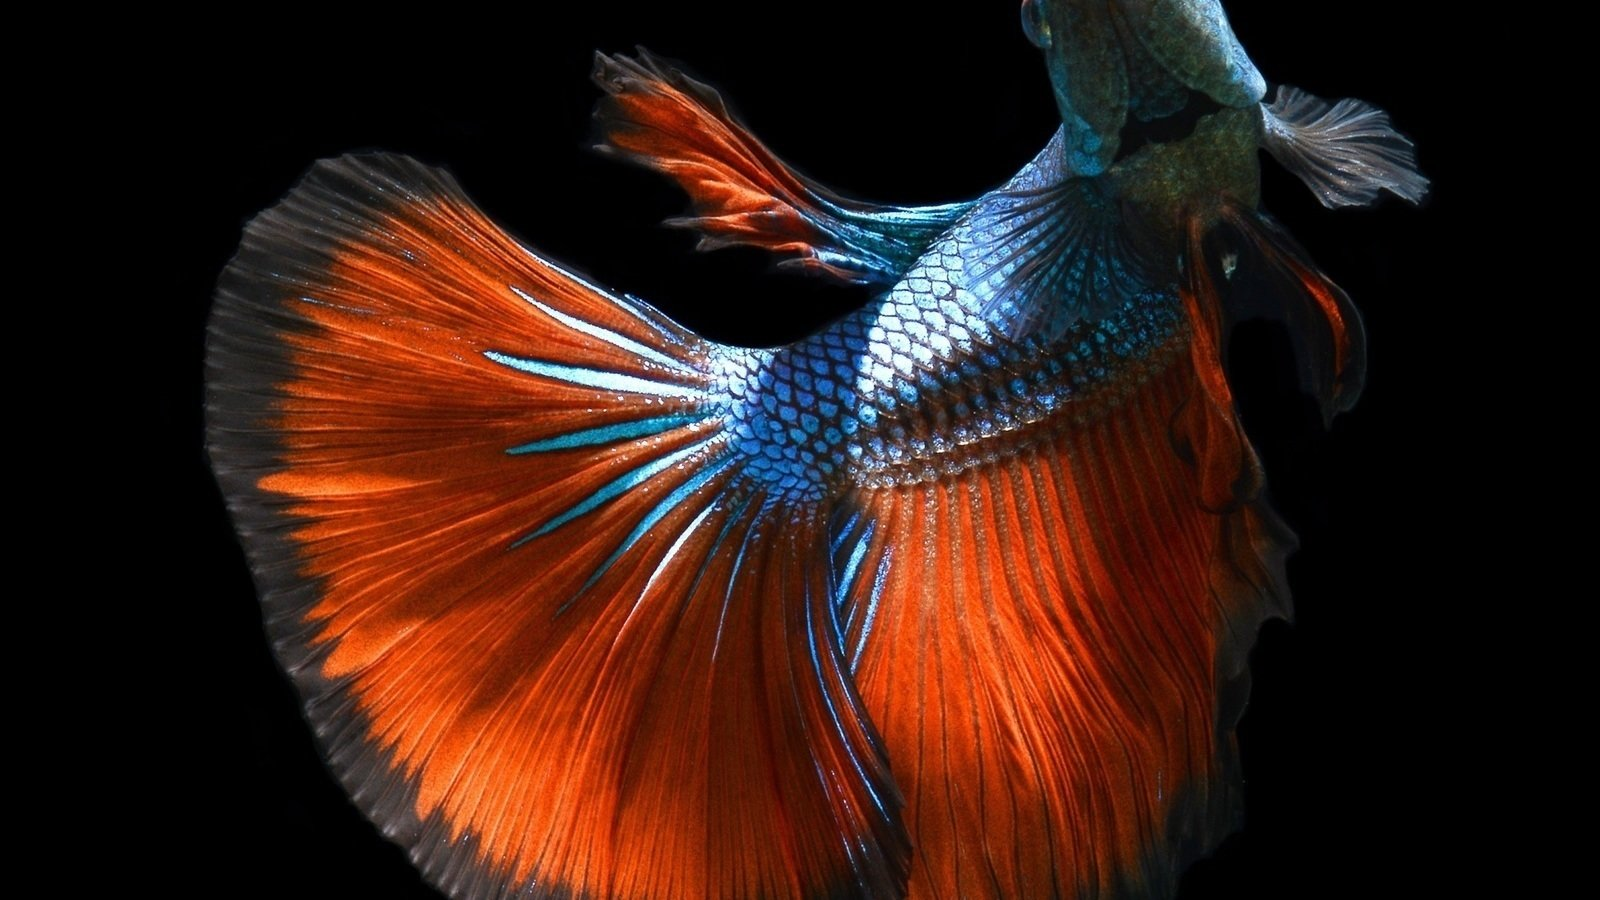 Petition · Please provide humane habitats for the Betta Fish you ...